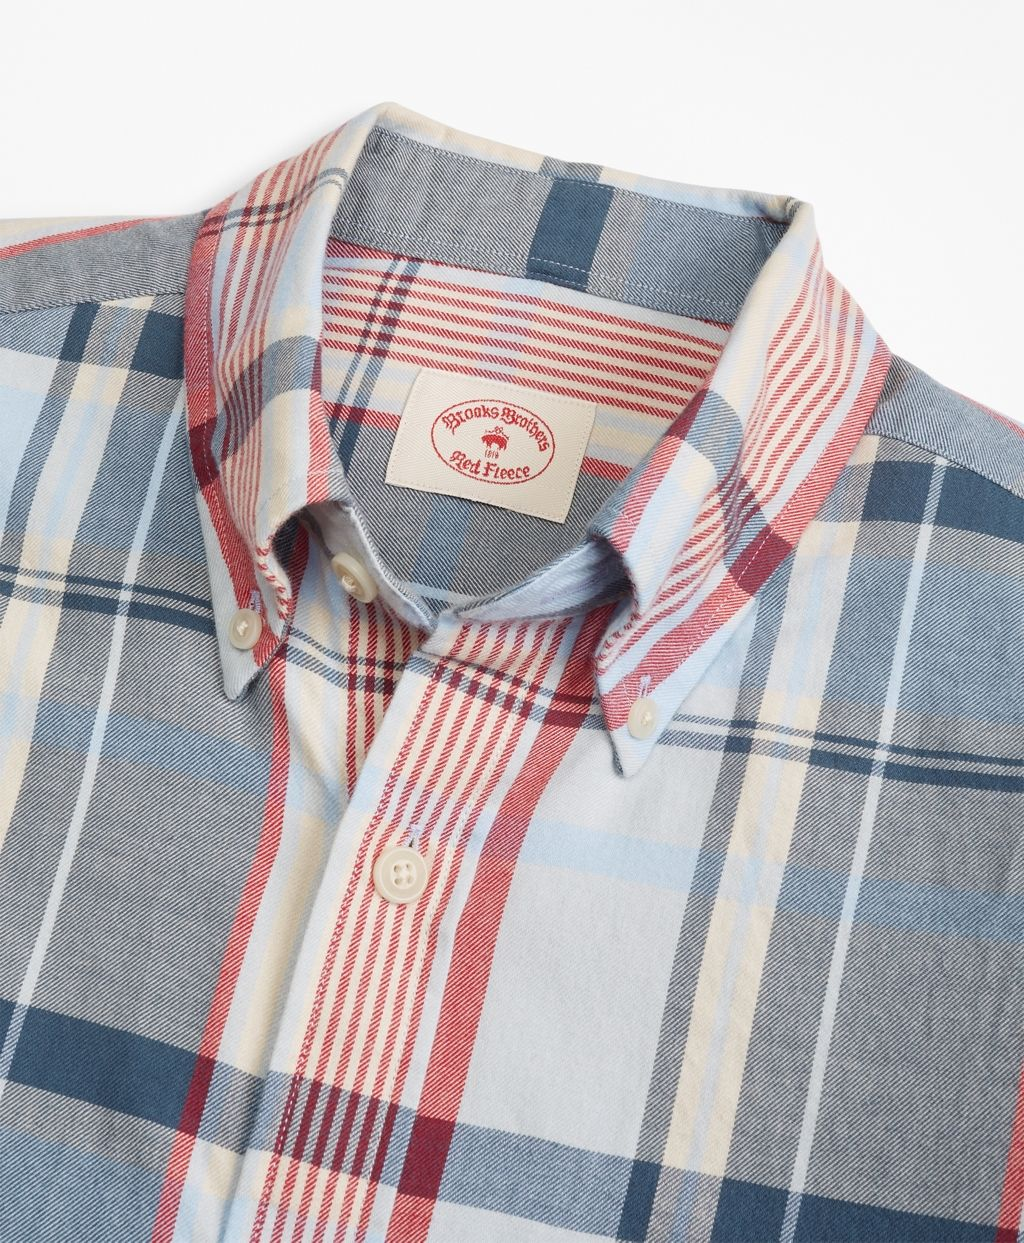 38ac26c2ed1 The perfect transitional sport shirt for Fall. - Red Fleece Plaid Summer  Twill Sport Shirt